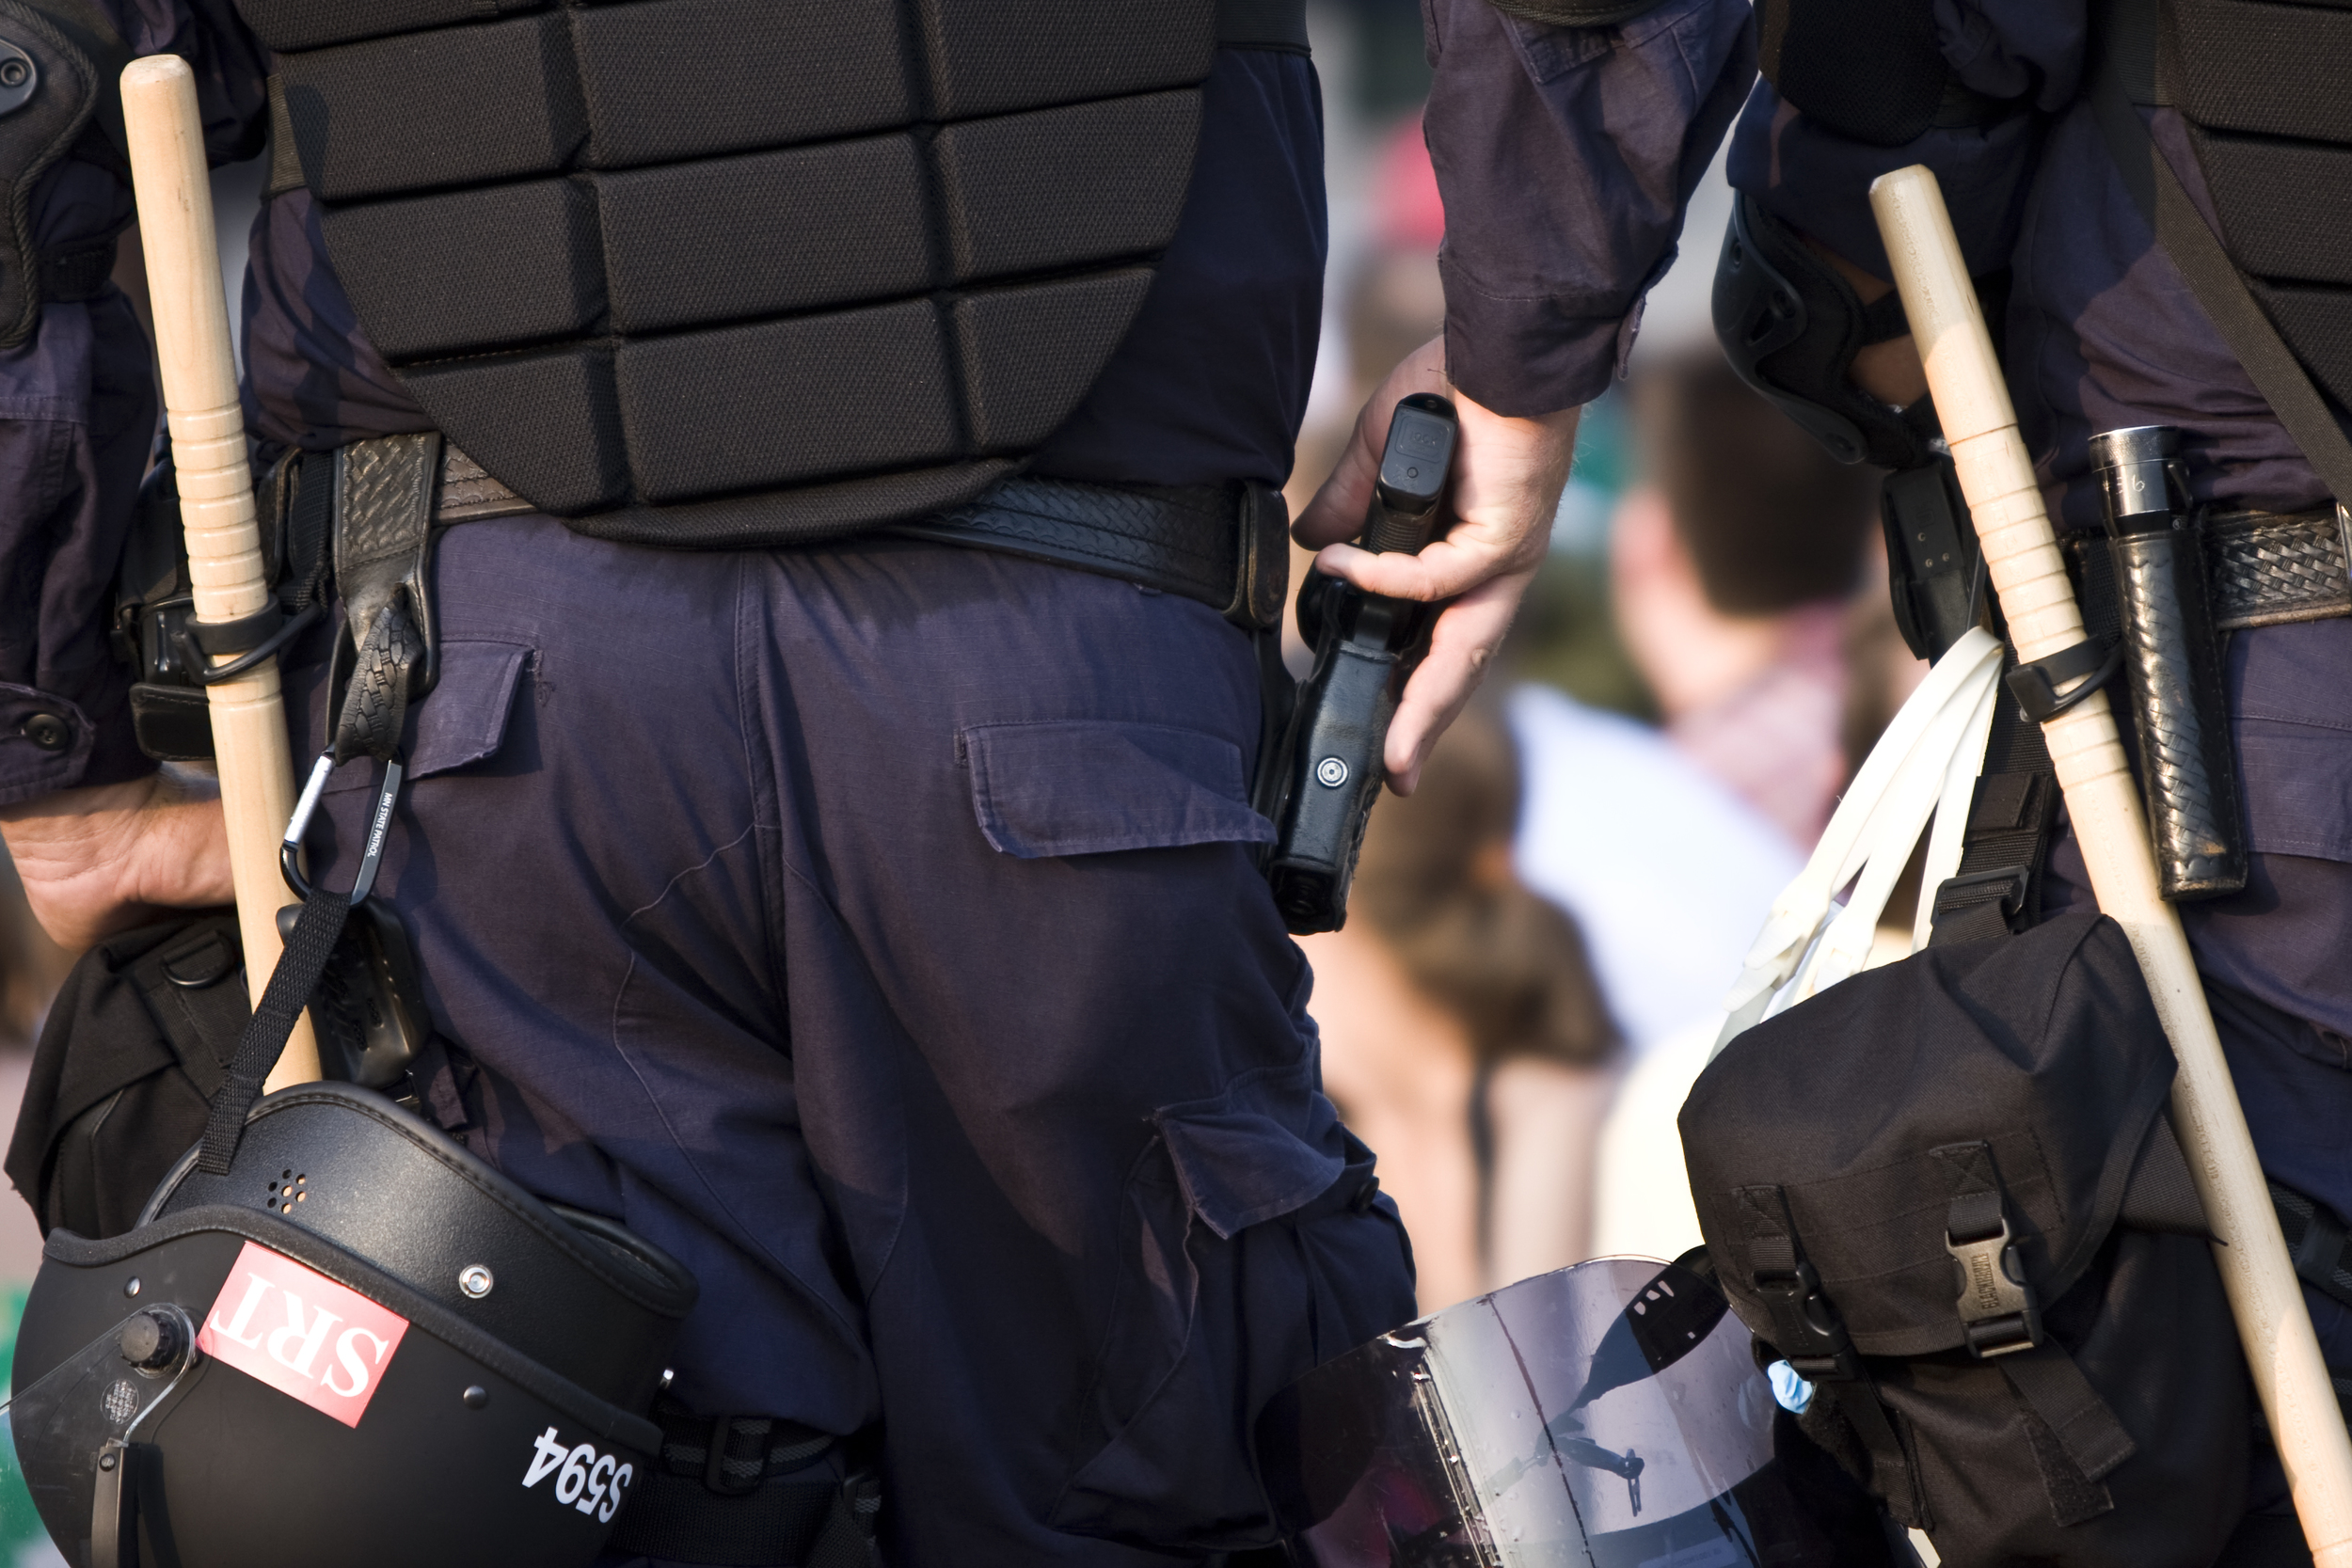 Photo Description: A rear-view of two police officers standing before a blurry crowd. The officer to the left has his hand on his gun. They are both equiped with weapons, armor, and helmets.